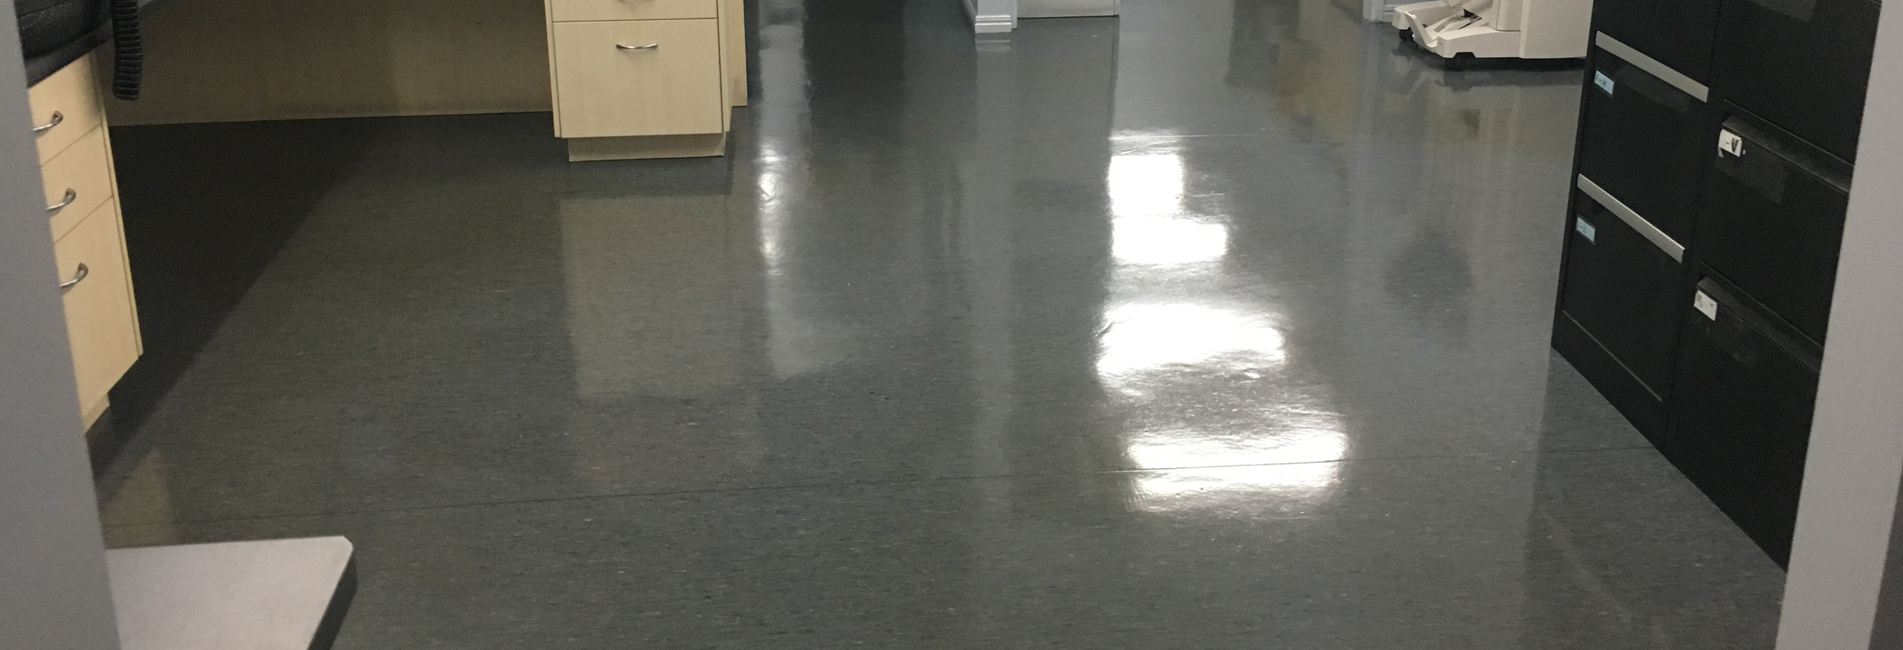 Vinyl Floor Sealing Redcliffe, Stripping & Sealing Margate, Commercial Cleaning QLD, Office Cleaning Scarborough, Medical Centre Cleaning Clontarf, Child Care Cleaning Kippa-Ring